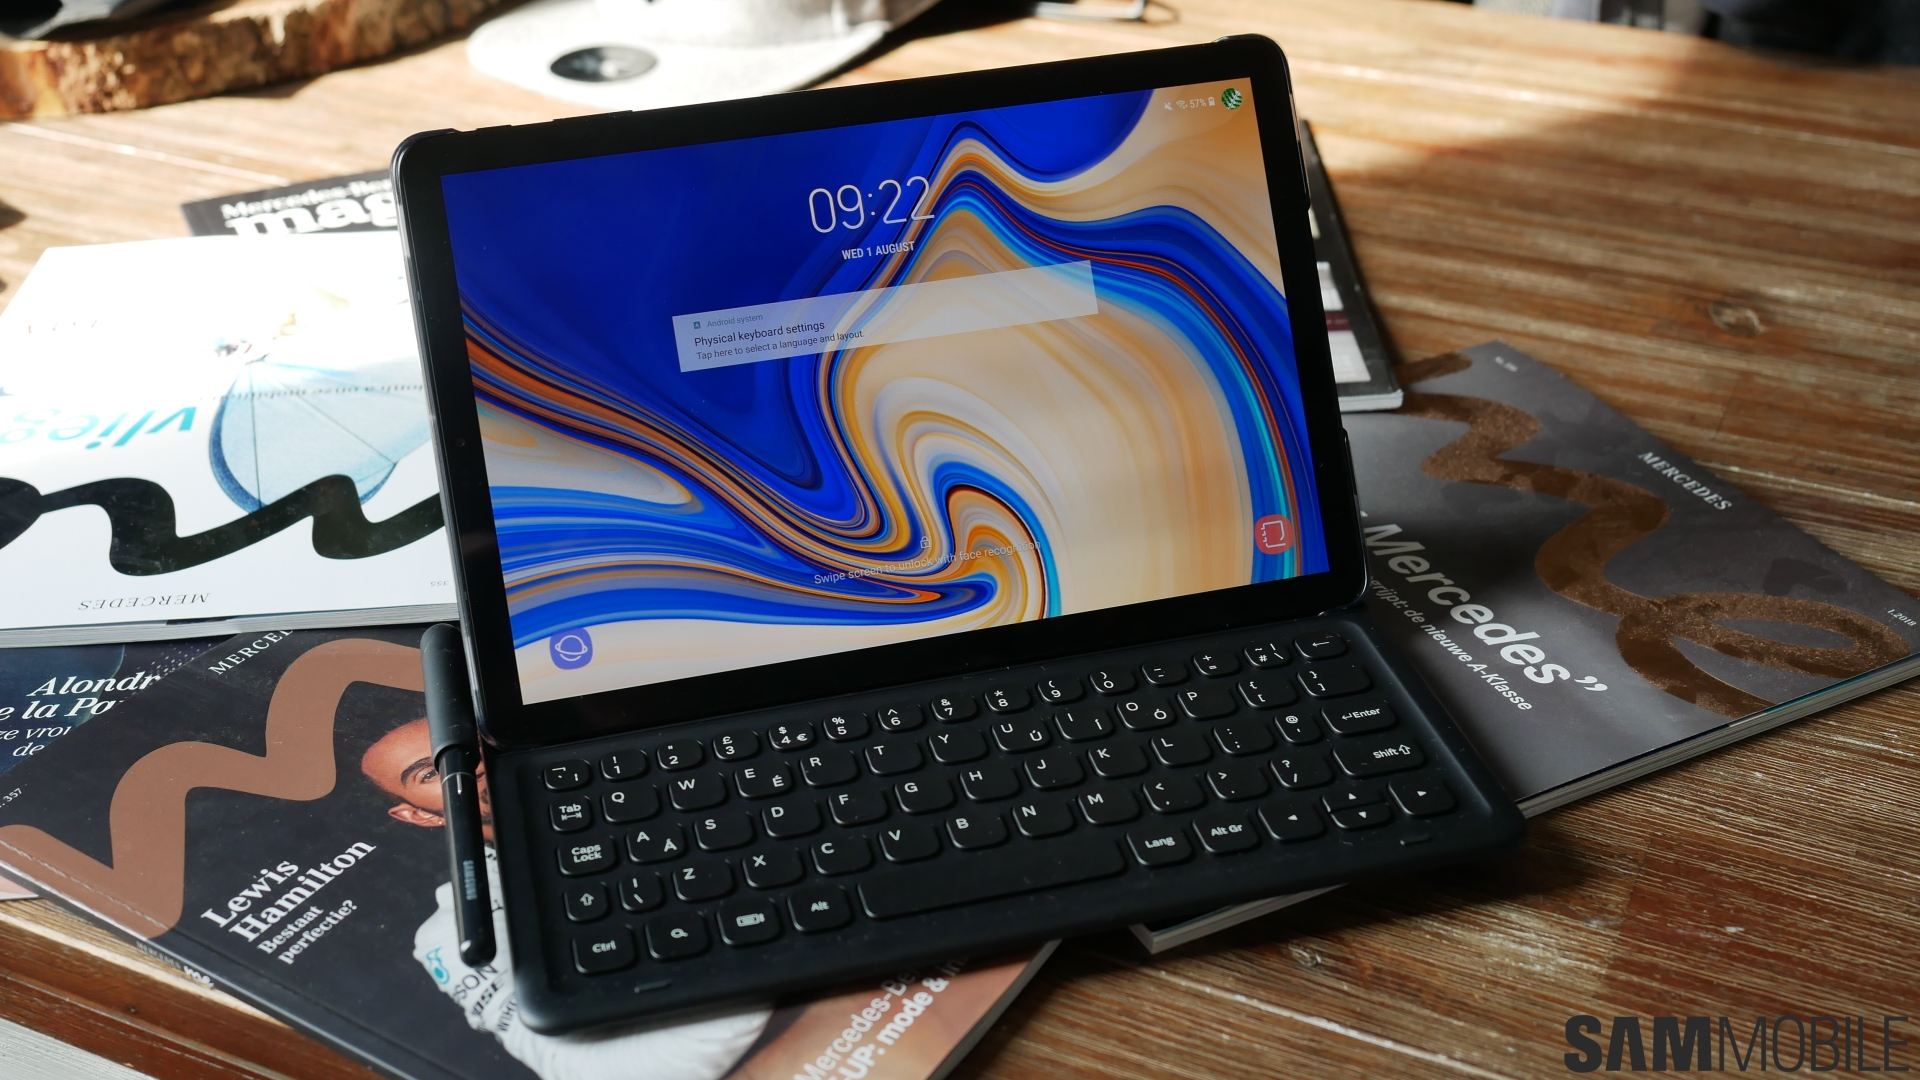 Three not-so-obvious Galaxy Tab S4 'drawbacks' buyers should know